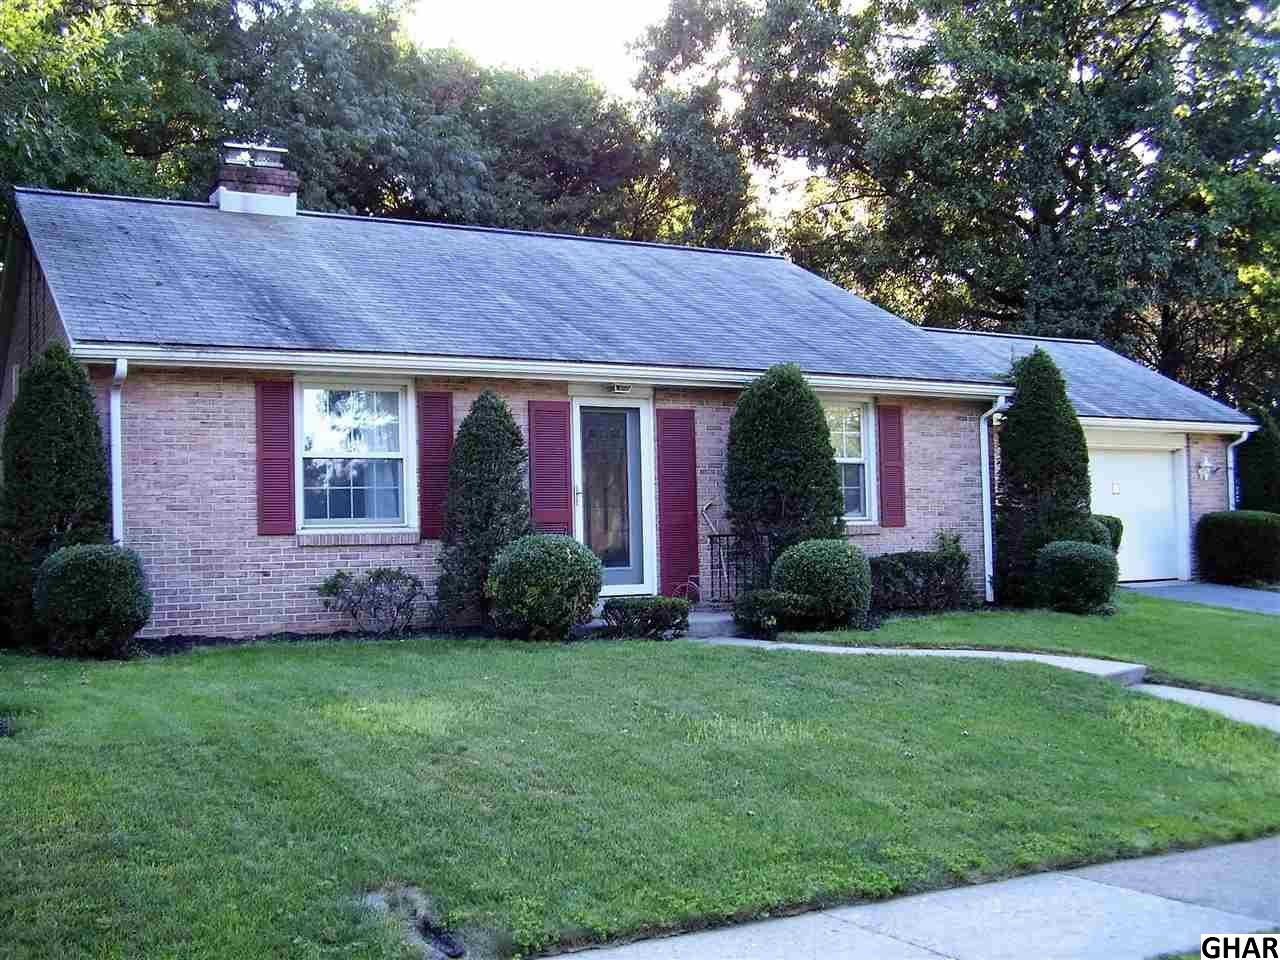 706 Hillcrest Rd, Hershey, PA 17033